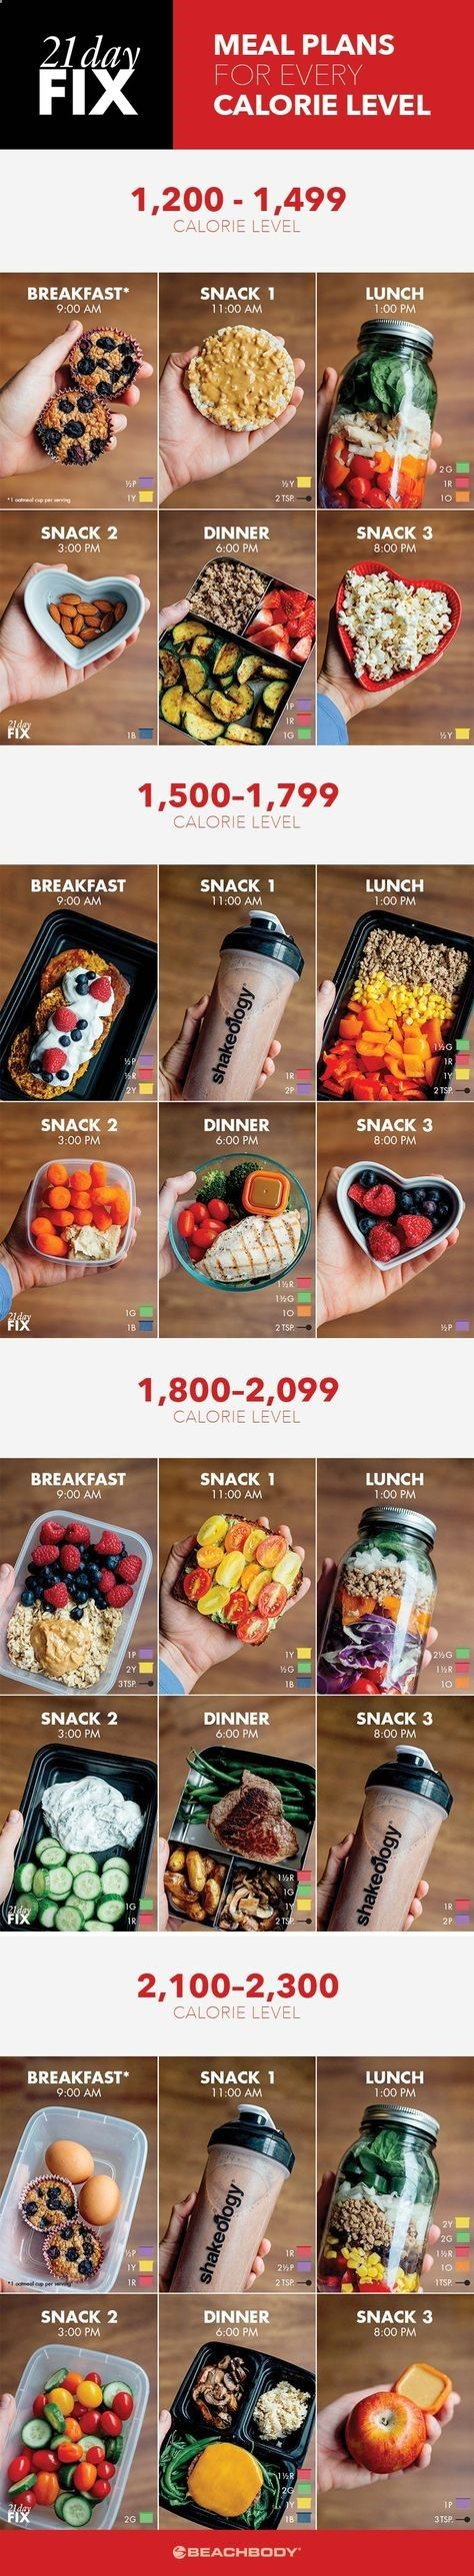 Eat Stop Eat To Loss Weight - If you're on the 21 Day Fix meal plan, check out these quick and easy meal prep ideas for every calorie level. meal planning // meal prep // Autumn Calabrese // Beachbody Programs // healthy snacks // Shakeology // salad jars // 21 Day Fix // healthy eating// Beachbody // Beachbody Blog // In Just One Day This Simple Strategy Frees You From Complicated Diet Rules - And Eliminates Rebound Weight Gain